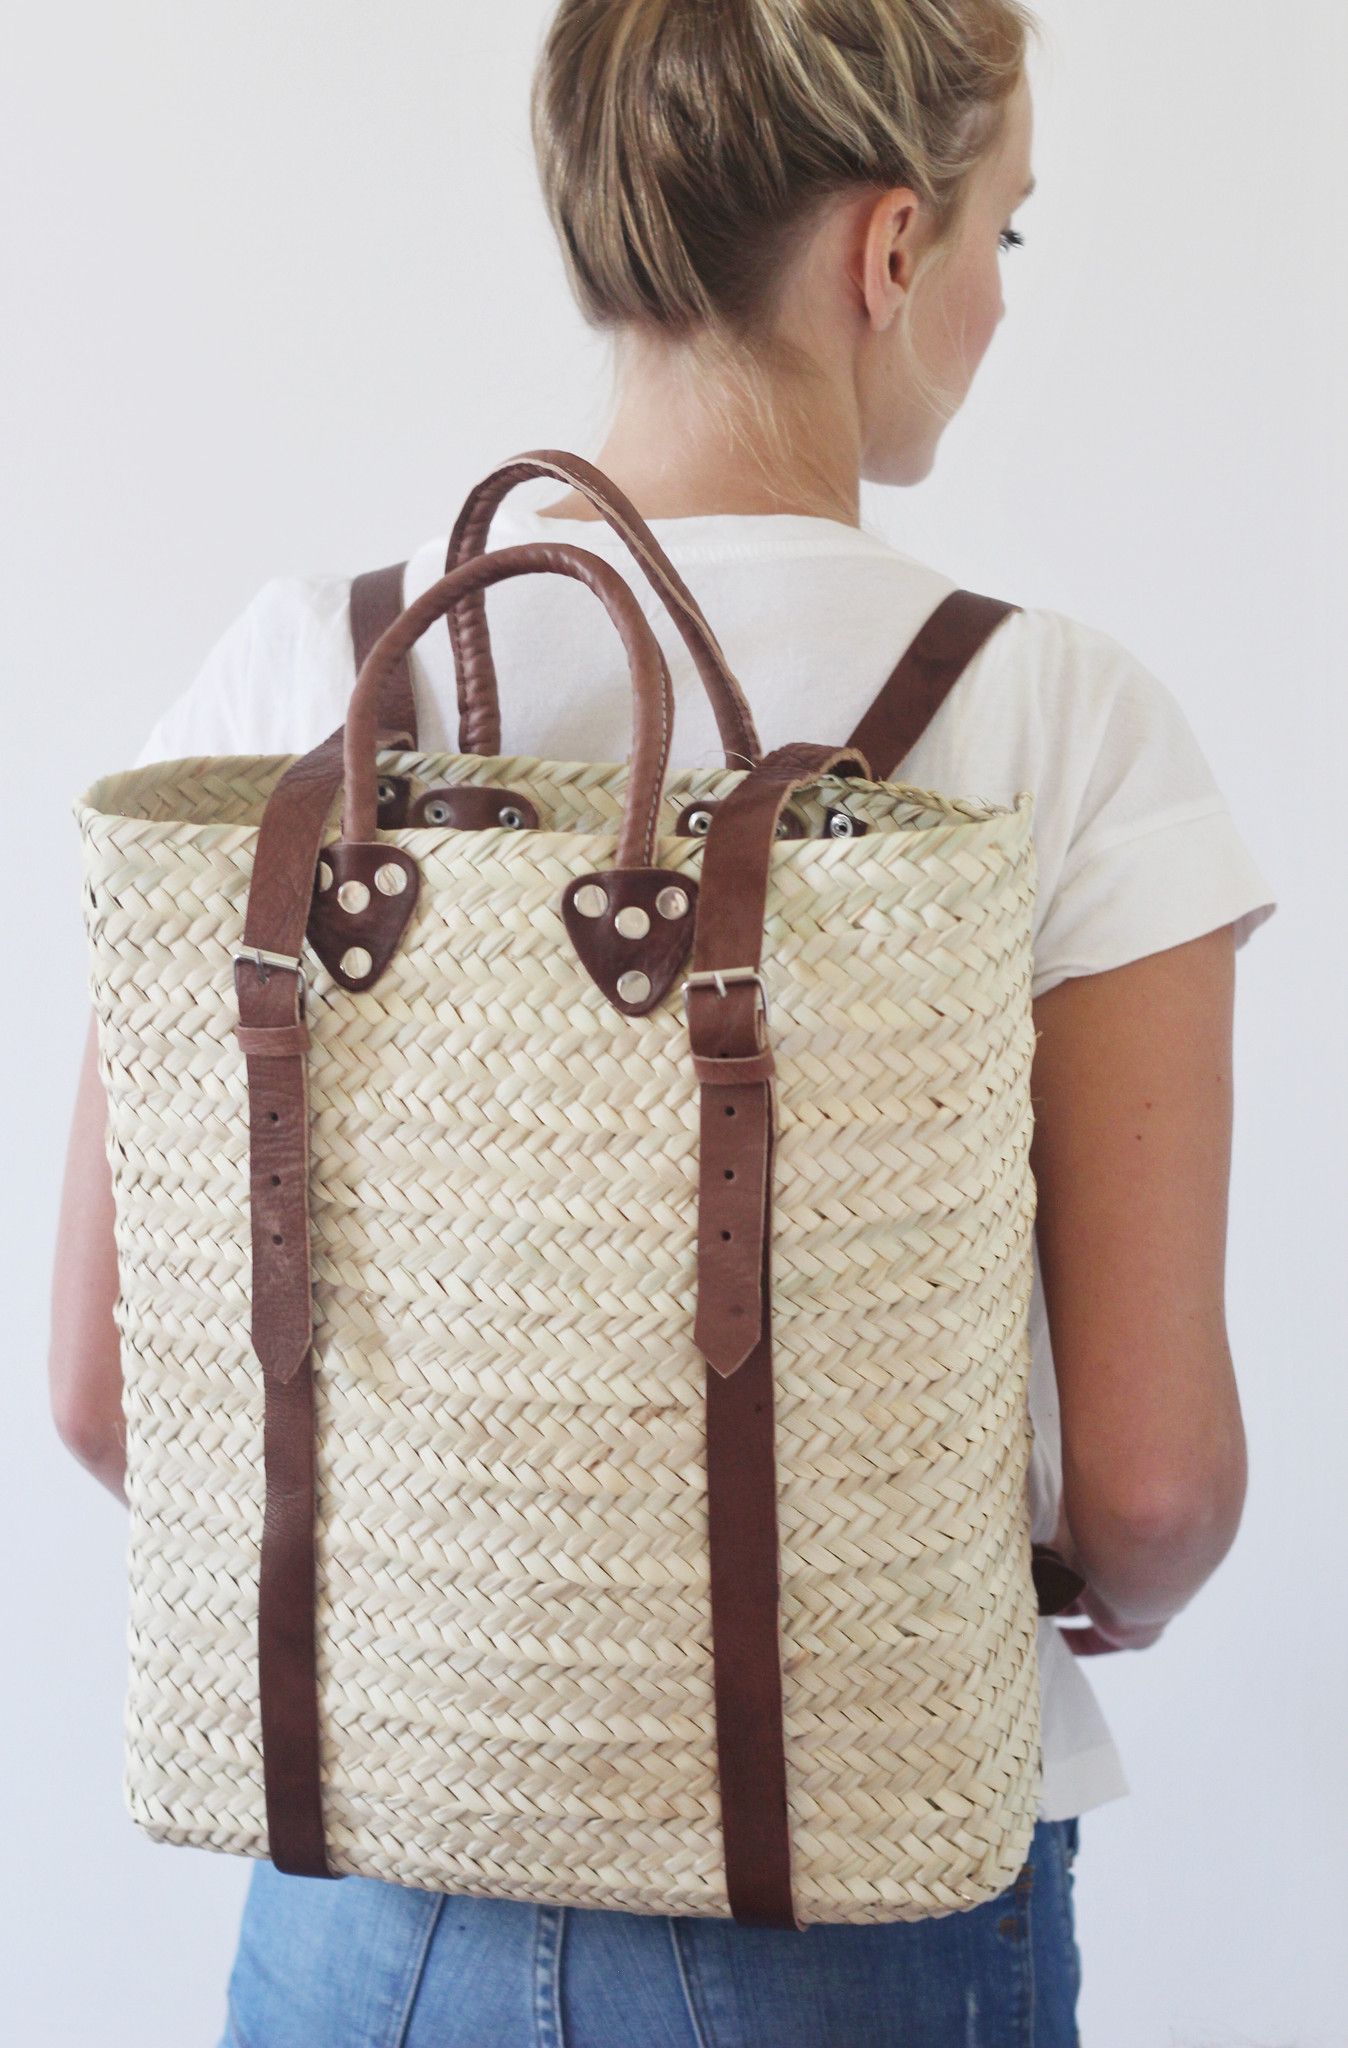 Luggage & Bags Hot New 1 Pc Pop Natural Rattan Woven Handles For Handbag Small Braid Oval Quilting Purse Diy Craft Replacement Bag Accessories 50% OFF